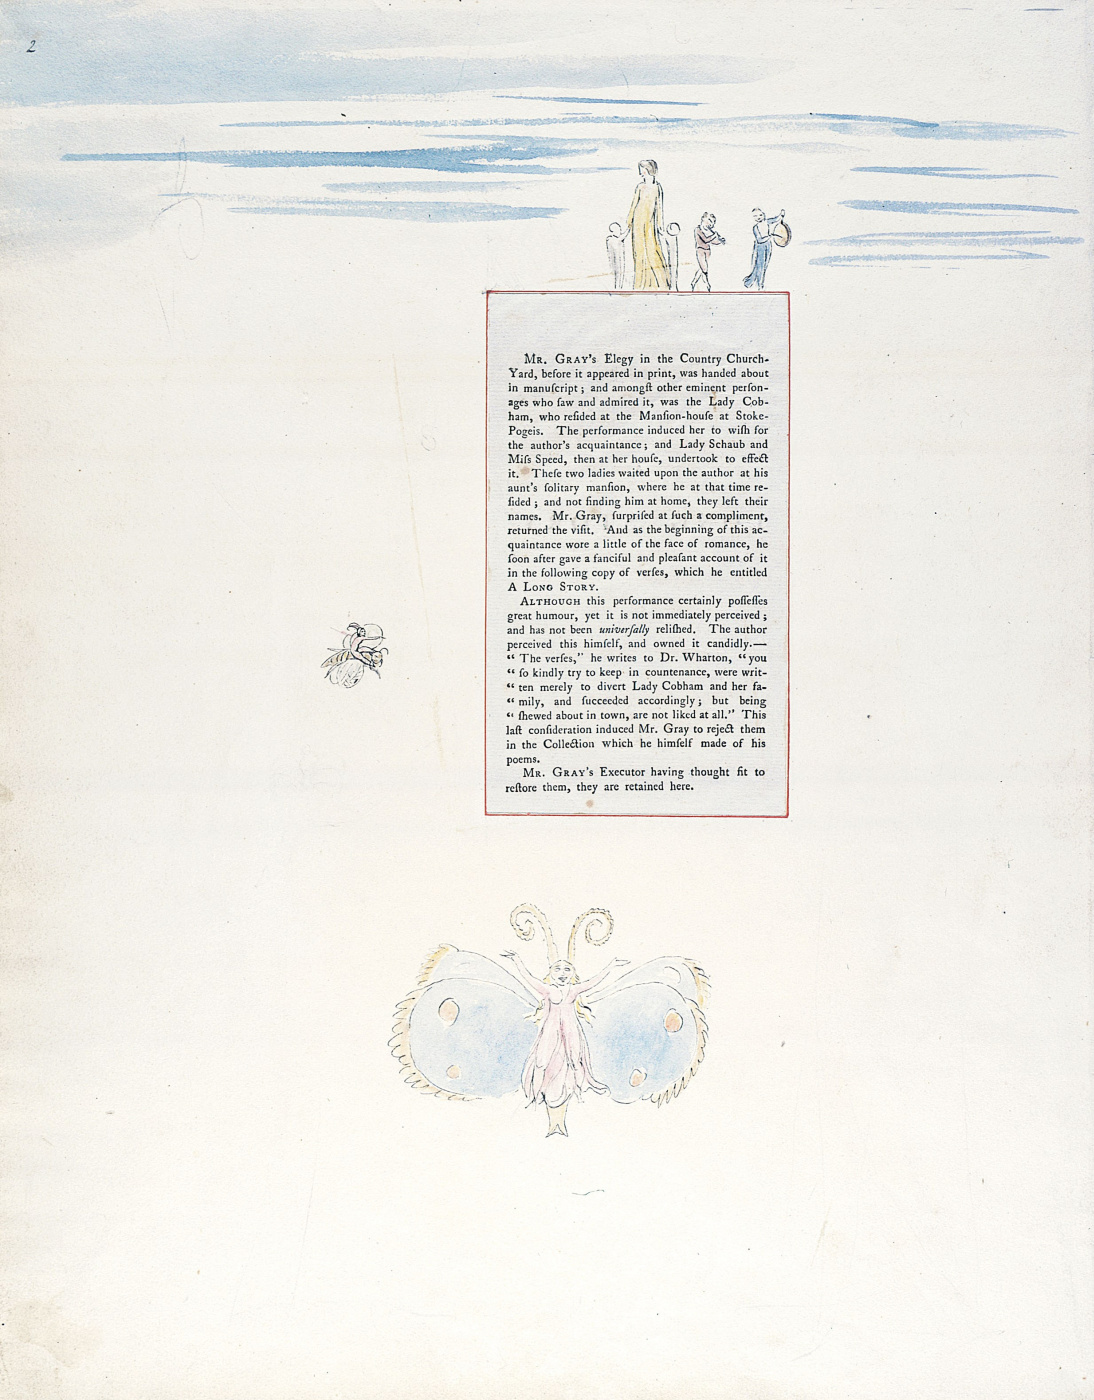 William Blake. Illustrations to the poems. Long story. Sheet 2